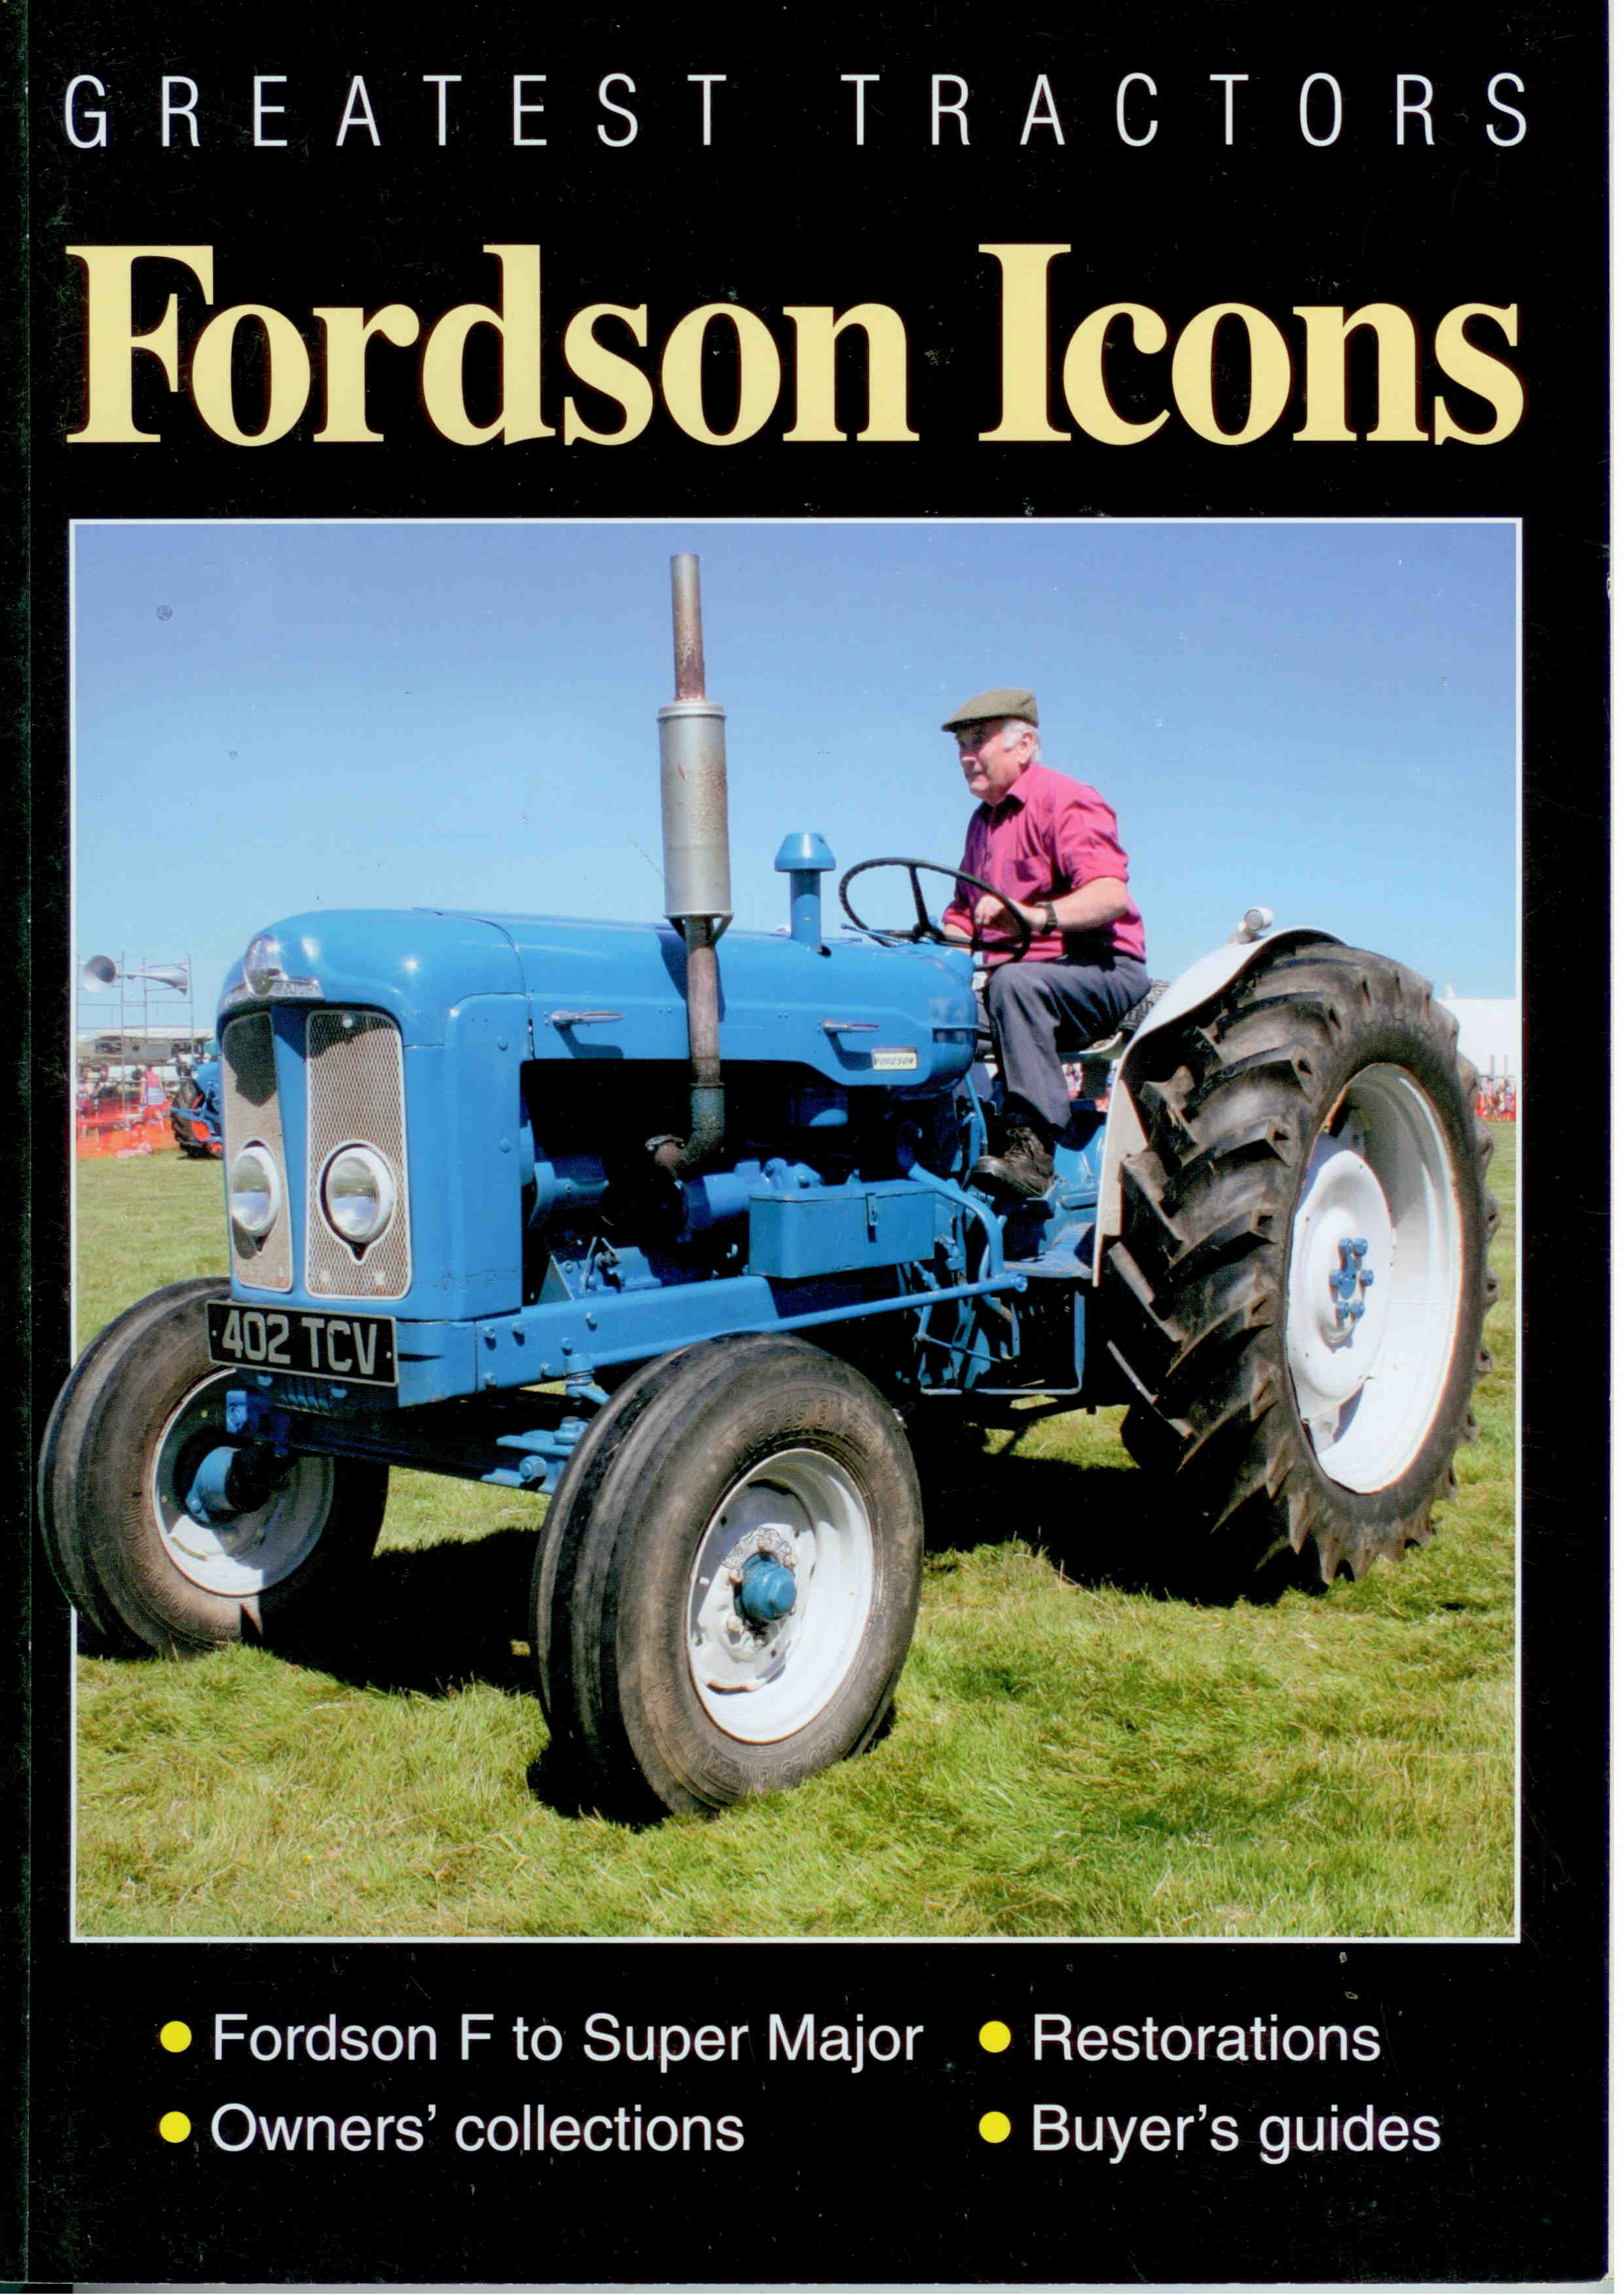 Fordson icons